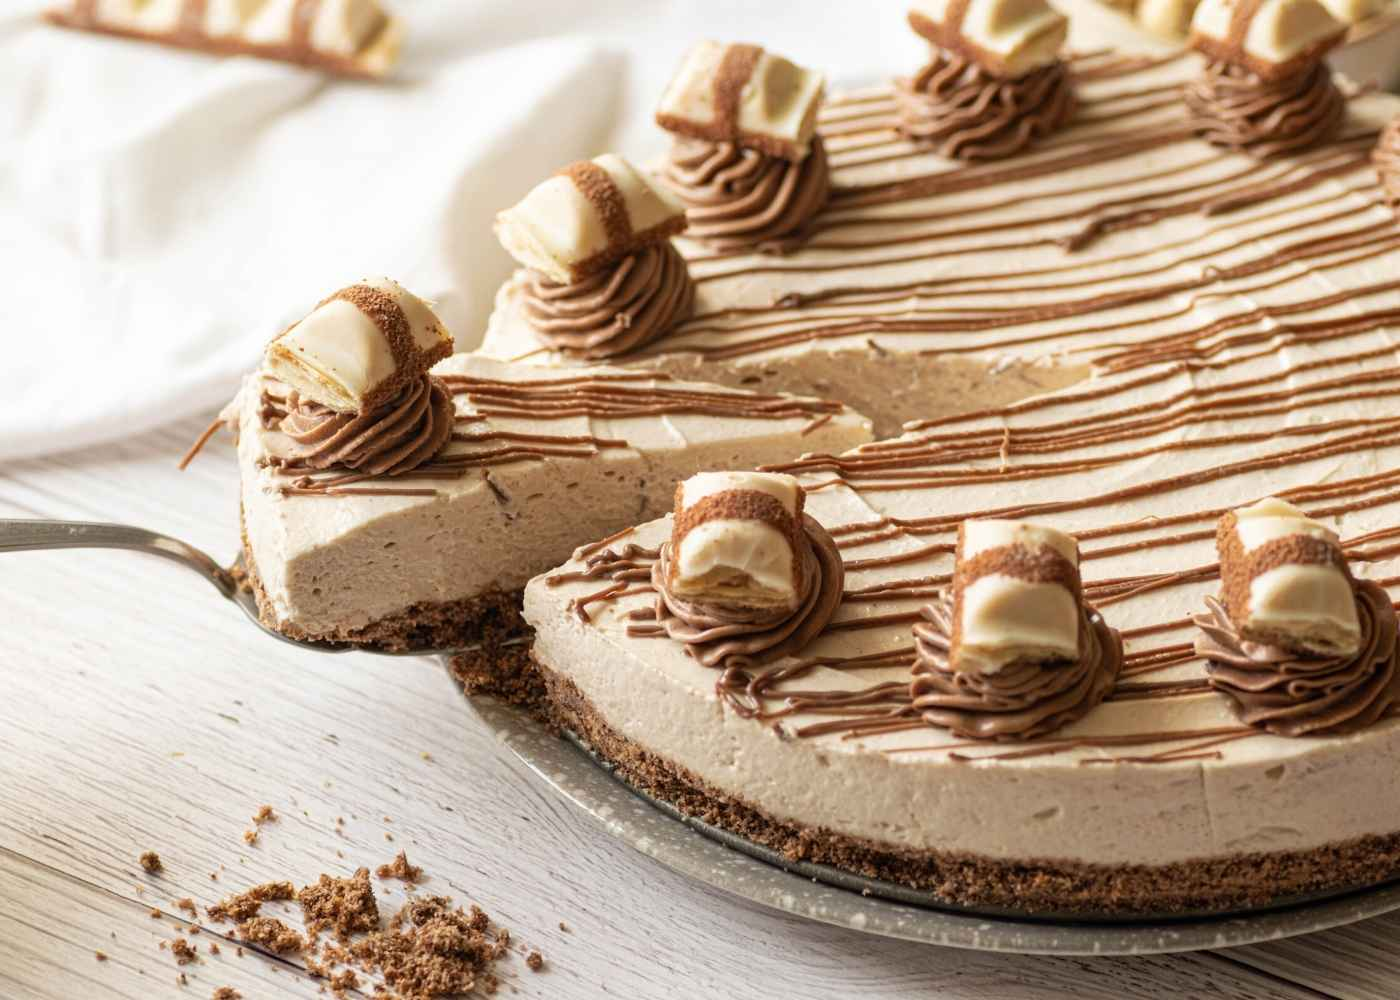 Kinder Bueno cheesecake with slice cut out